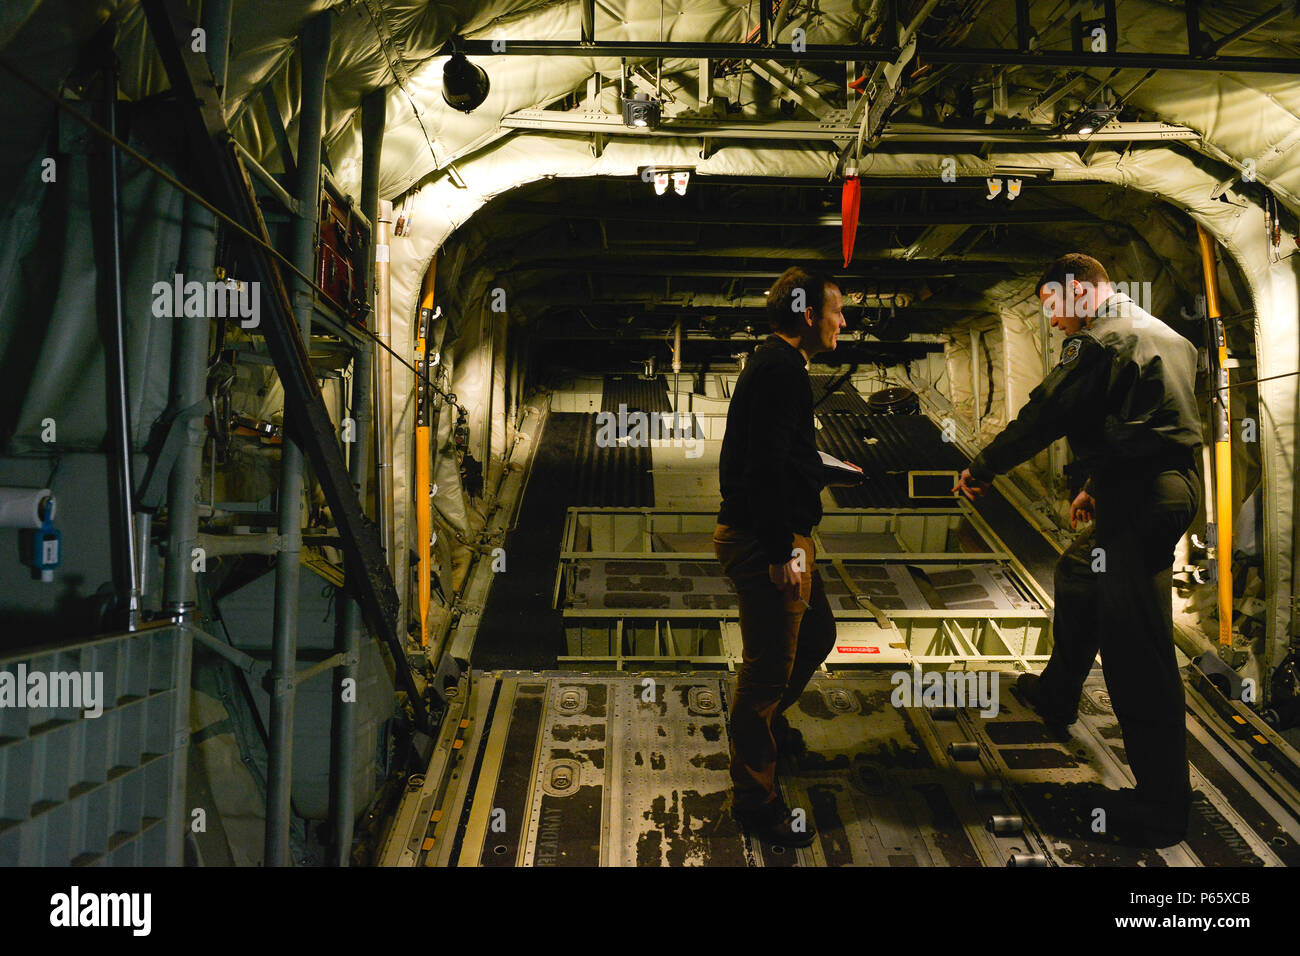 Tech. Sgt. James Moenning, 37th Airlift Squadron evaluator loadmaster, discusses the operations of a C-130J Super Hercules ramp with Pierre Yves, a French military contractor April 28, 2016, at Ramstein Air Base, Germany. The French air force recently purchased several C-130s and visited the 37th Airlift Squadron to survey the aircraft in order to better understand its features and capabilities. U.S. Air Force Photo/ Airman 1st Class Lane Plummer) - Stock Image